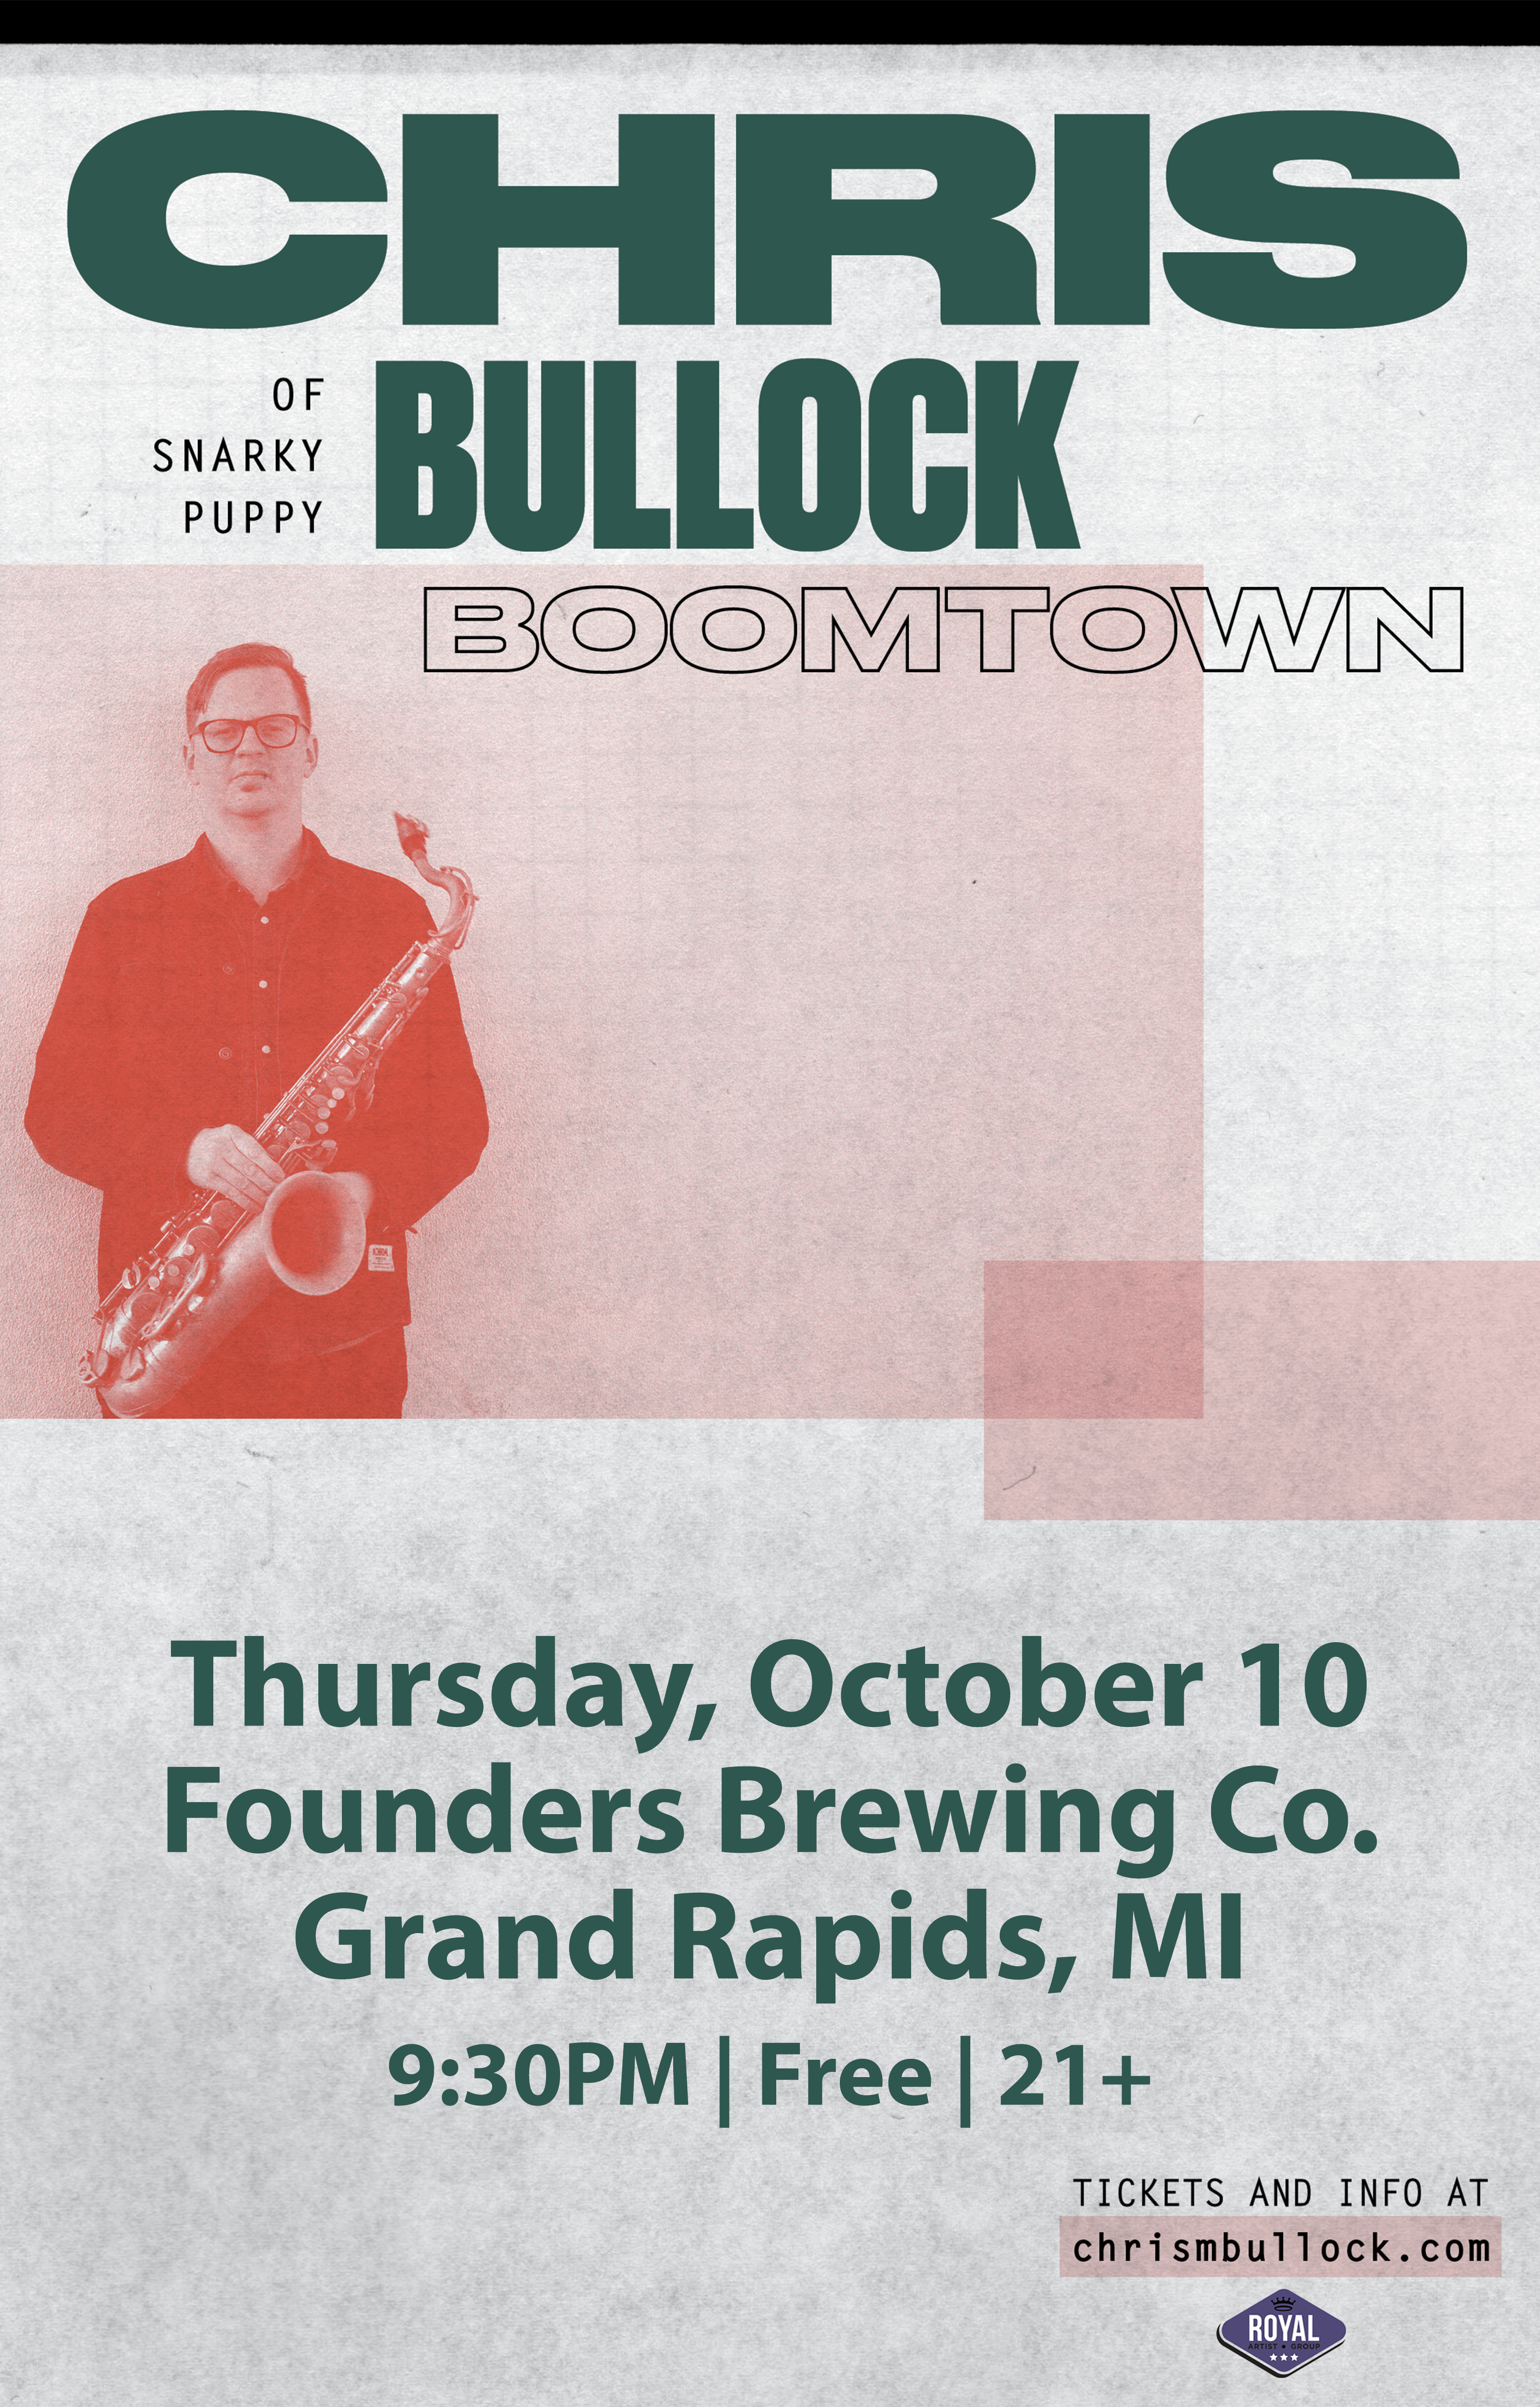 Chris Bullok event poster hosted by Founders Brewing Co.